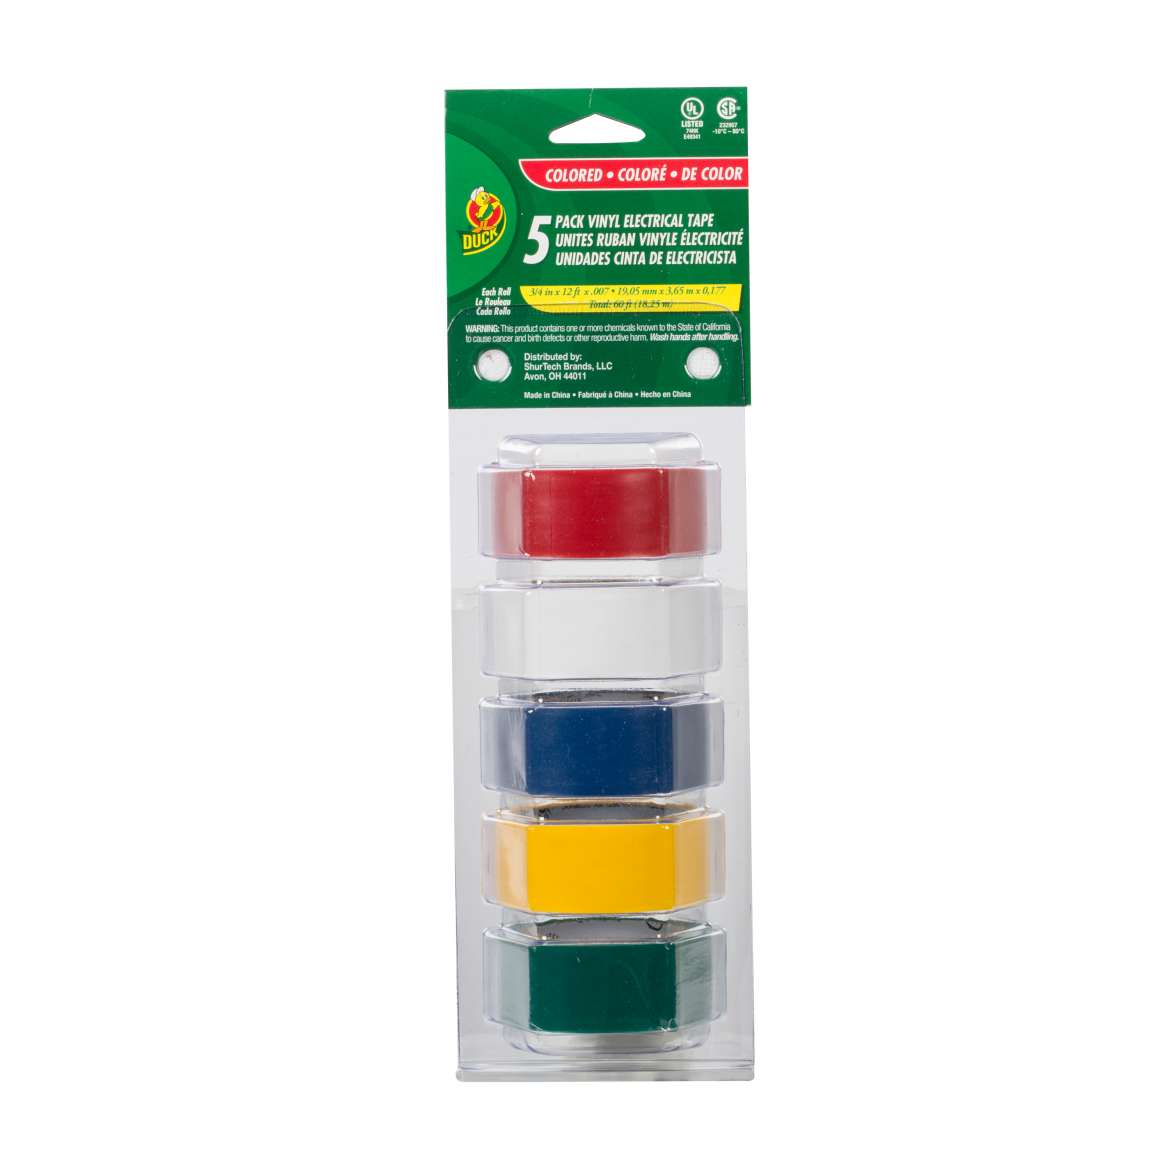 Duck® Brand Professional Color Coding Electrical Tape - Multi-Color, 5 pk, .75 in. x 12 ft. x 7 mil. Image